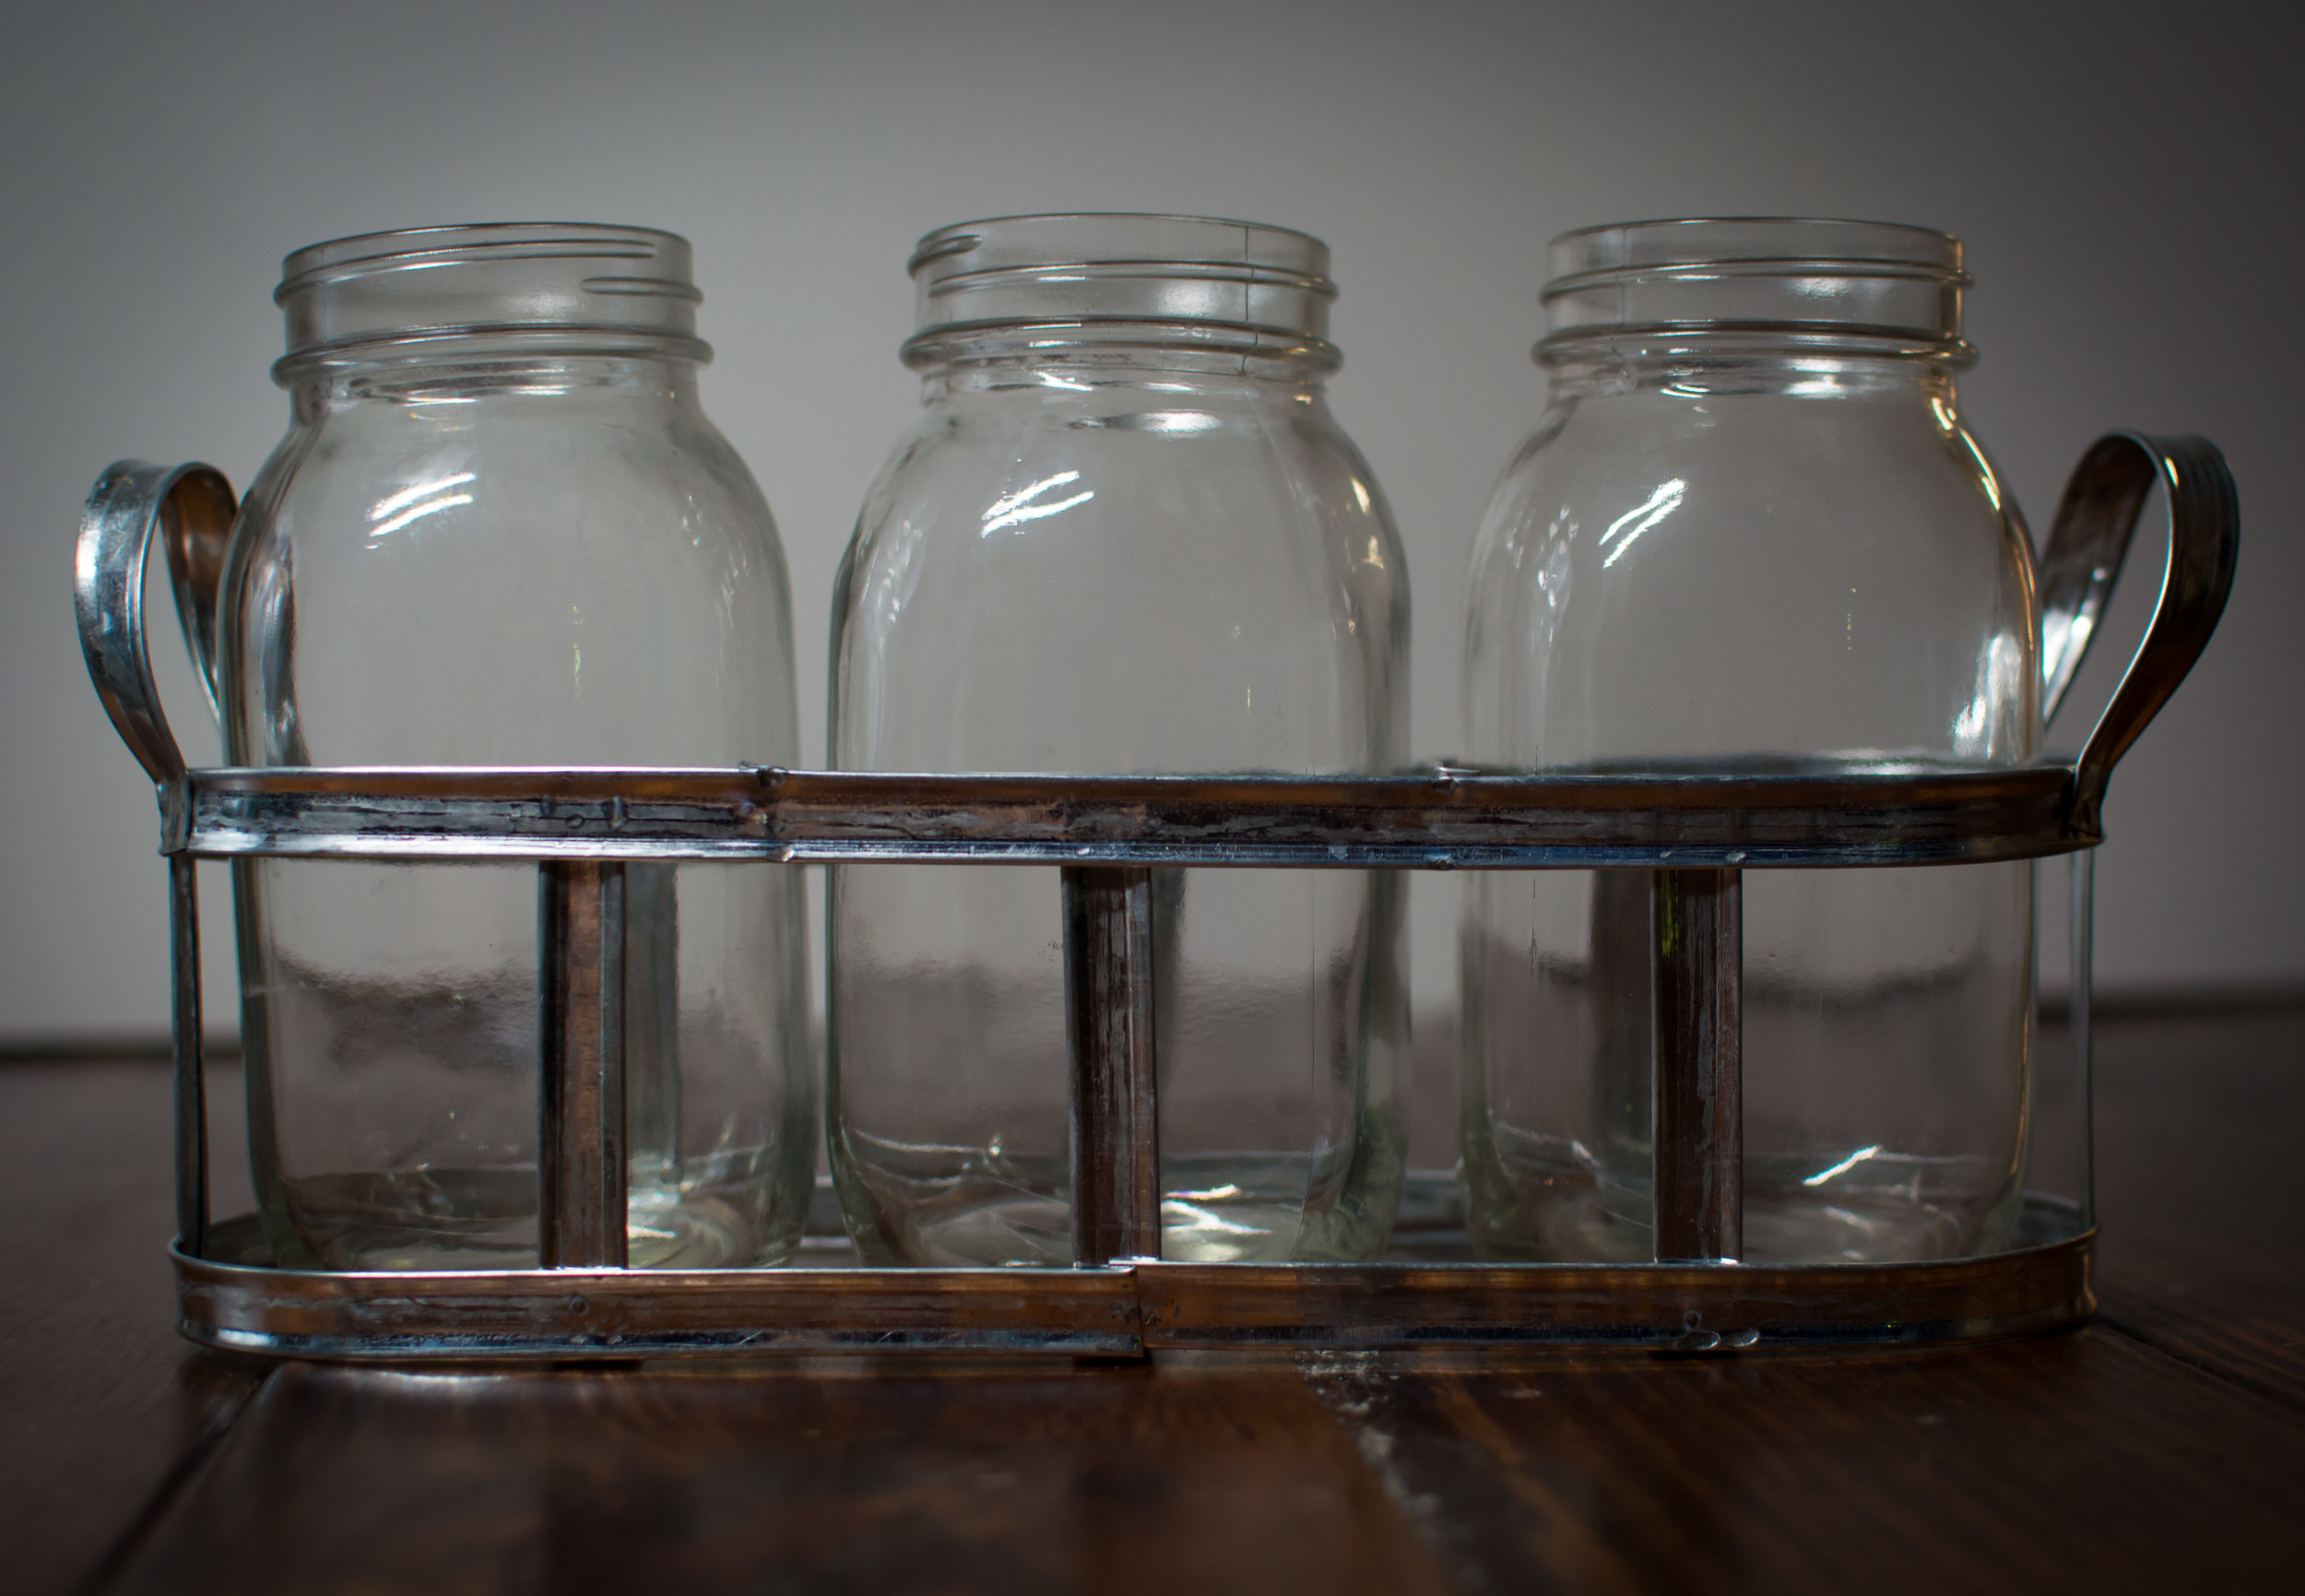 3 mason jar holder   Price: $5.00  Inquire about quantity and availability.